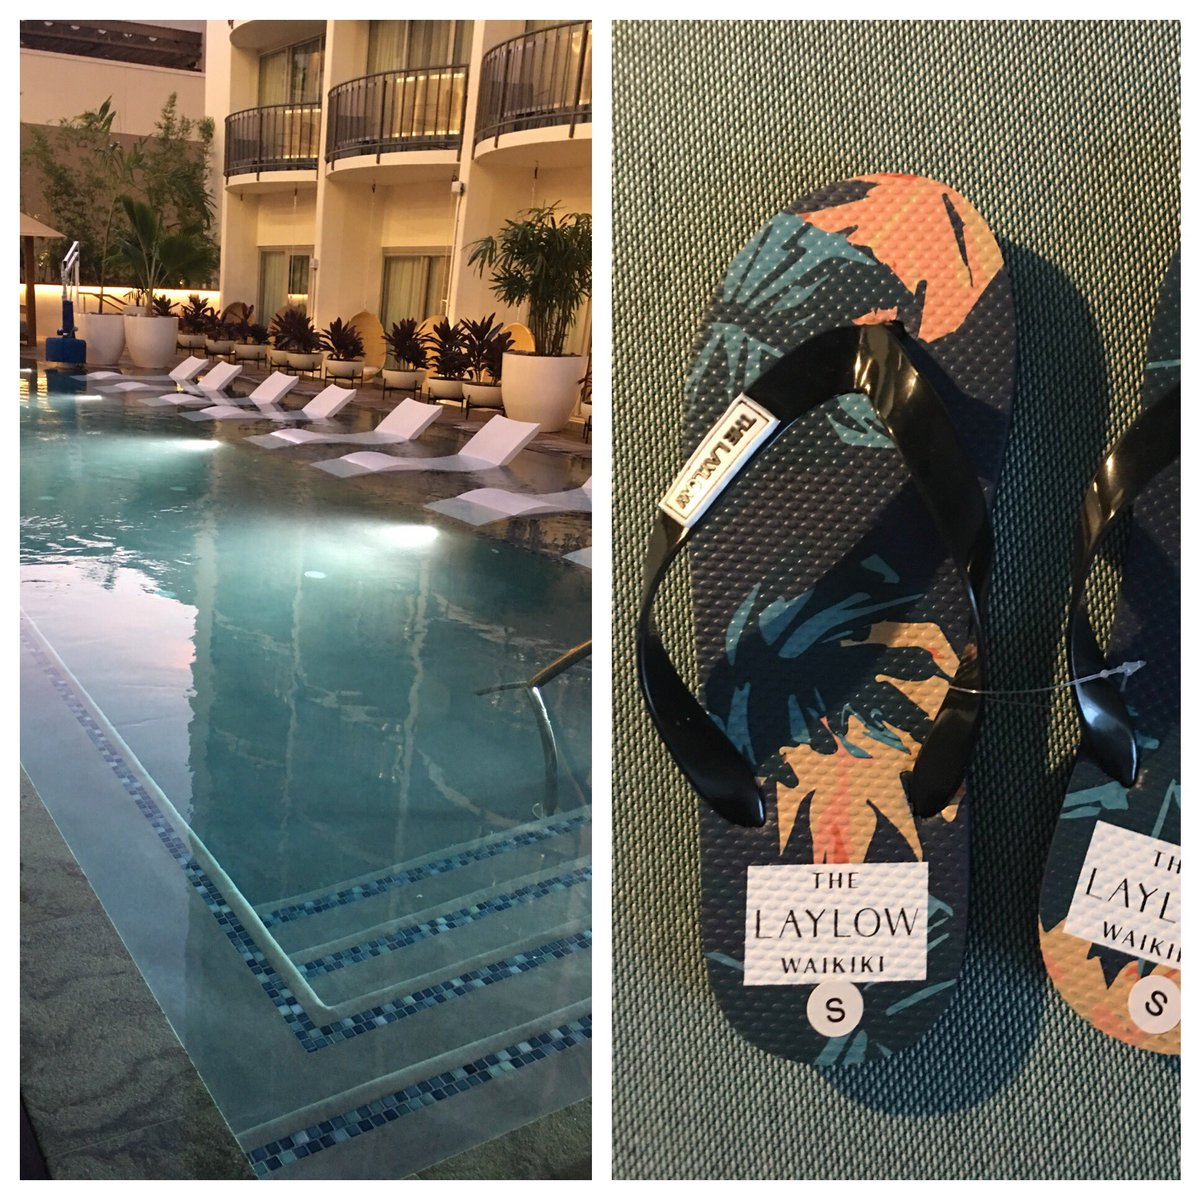 Salt-water pool and branded slippers @LaylowWaikiki